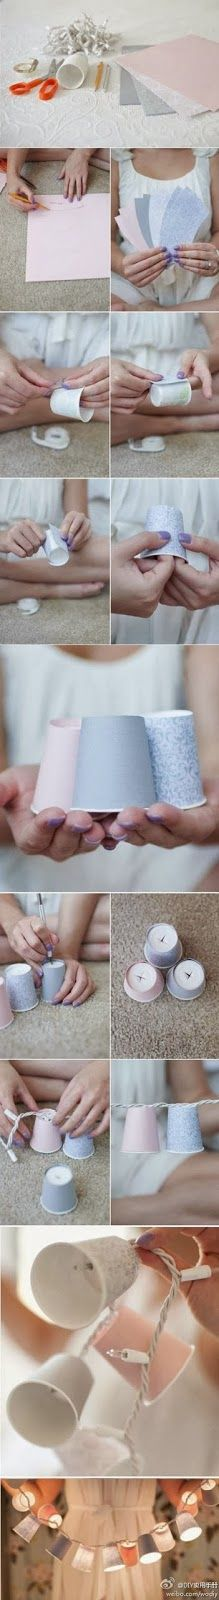 Make light shades with paper cups - Make light shades with paper cups Such paper cups can be really useful and practical. You just need some sheets of paper from different colors and pattern, a pair of scissors and a pen to sketch the outlines. Then cut them off and fold them in a proper way. Pierce the bottom and string the cups up to Christmas lights, for example. You'll be amazed by the result.